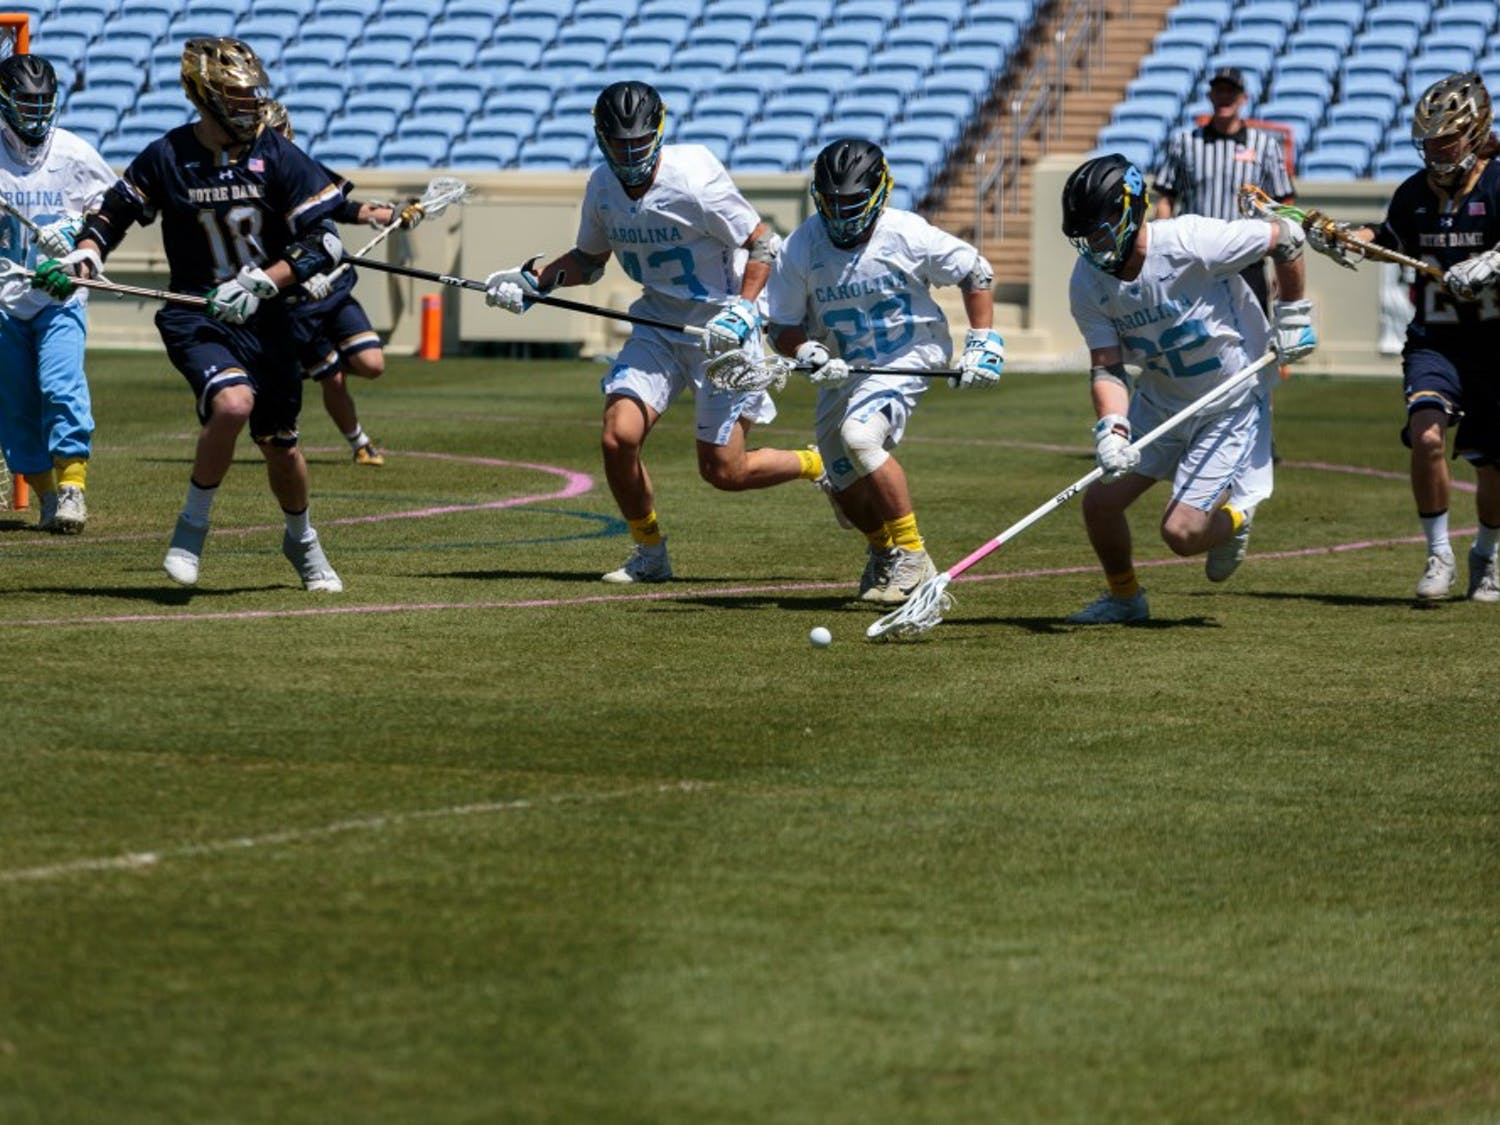 Players on the UNC men's lacrosse team fight for a ground ball against Notre Dame on April 20 at Kenan Stadium.